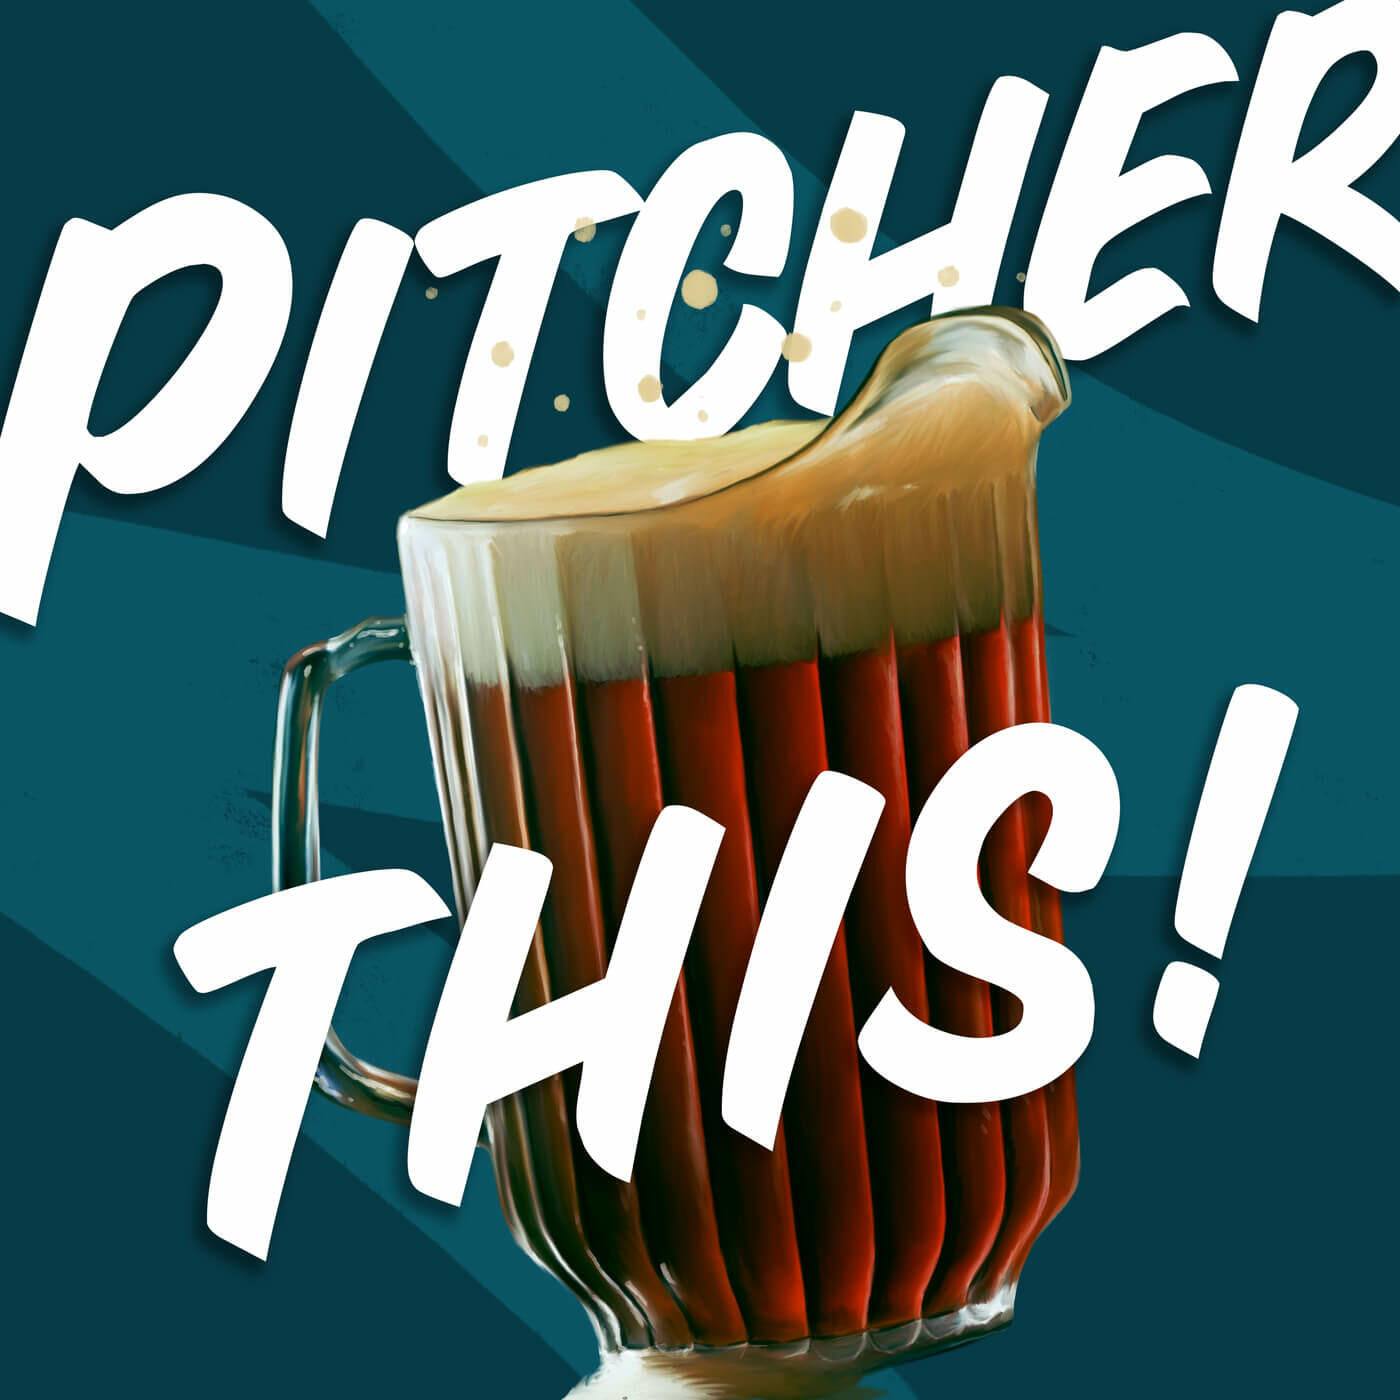 Pitcher This!